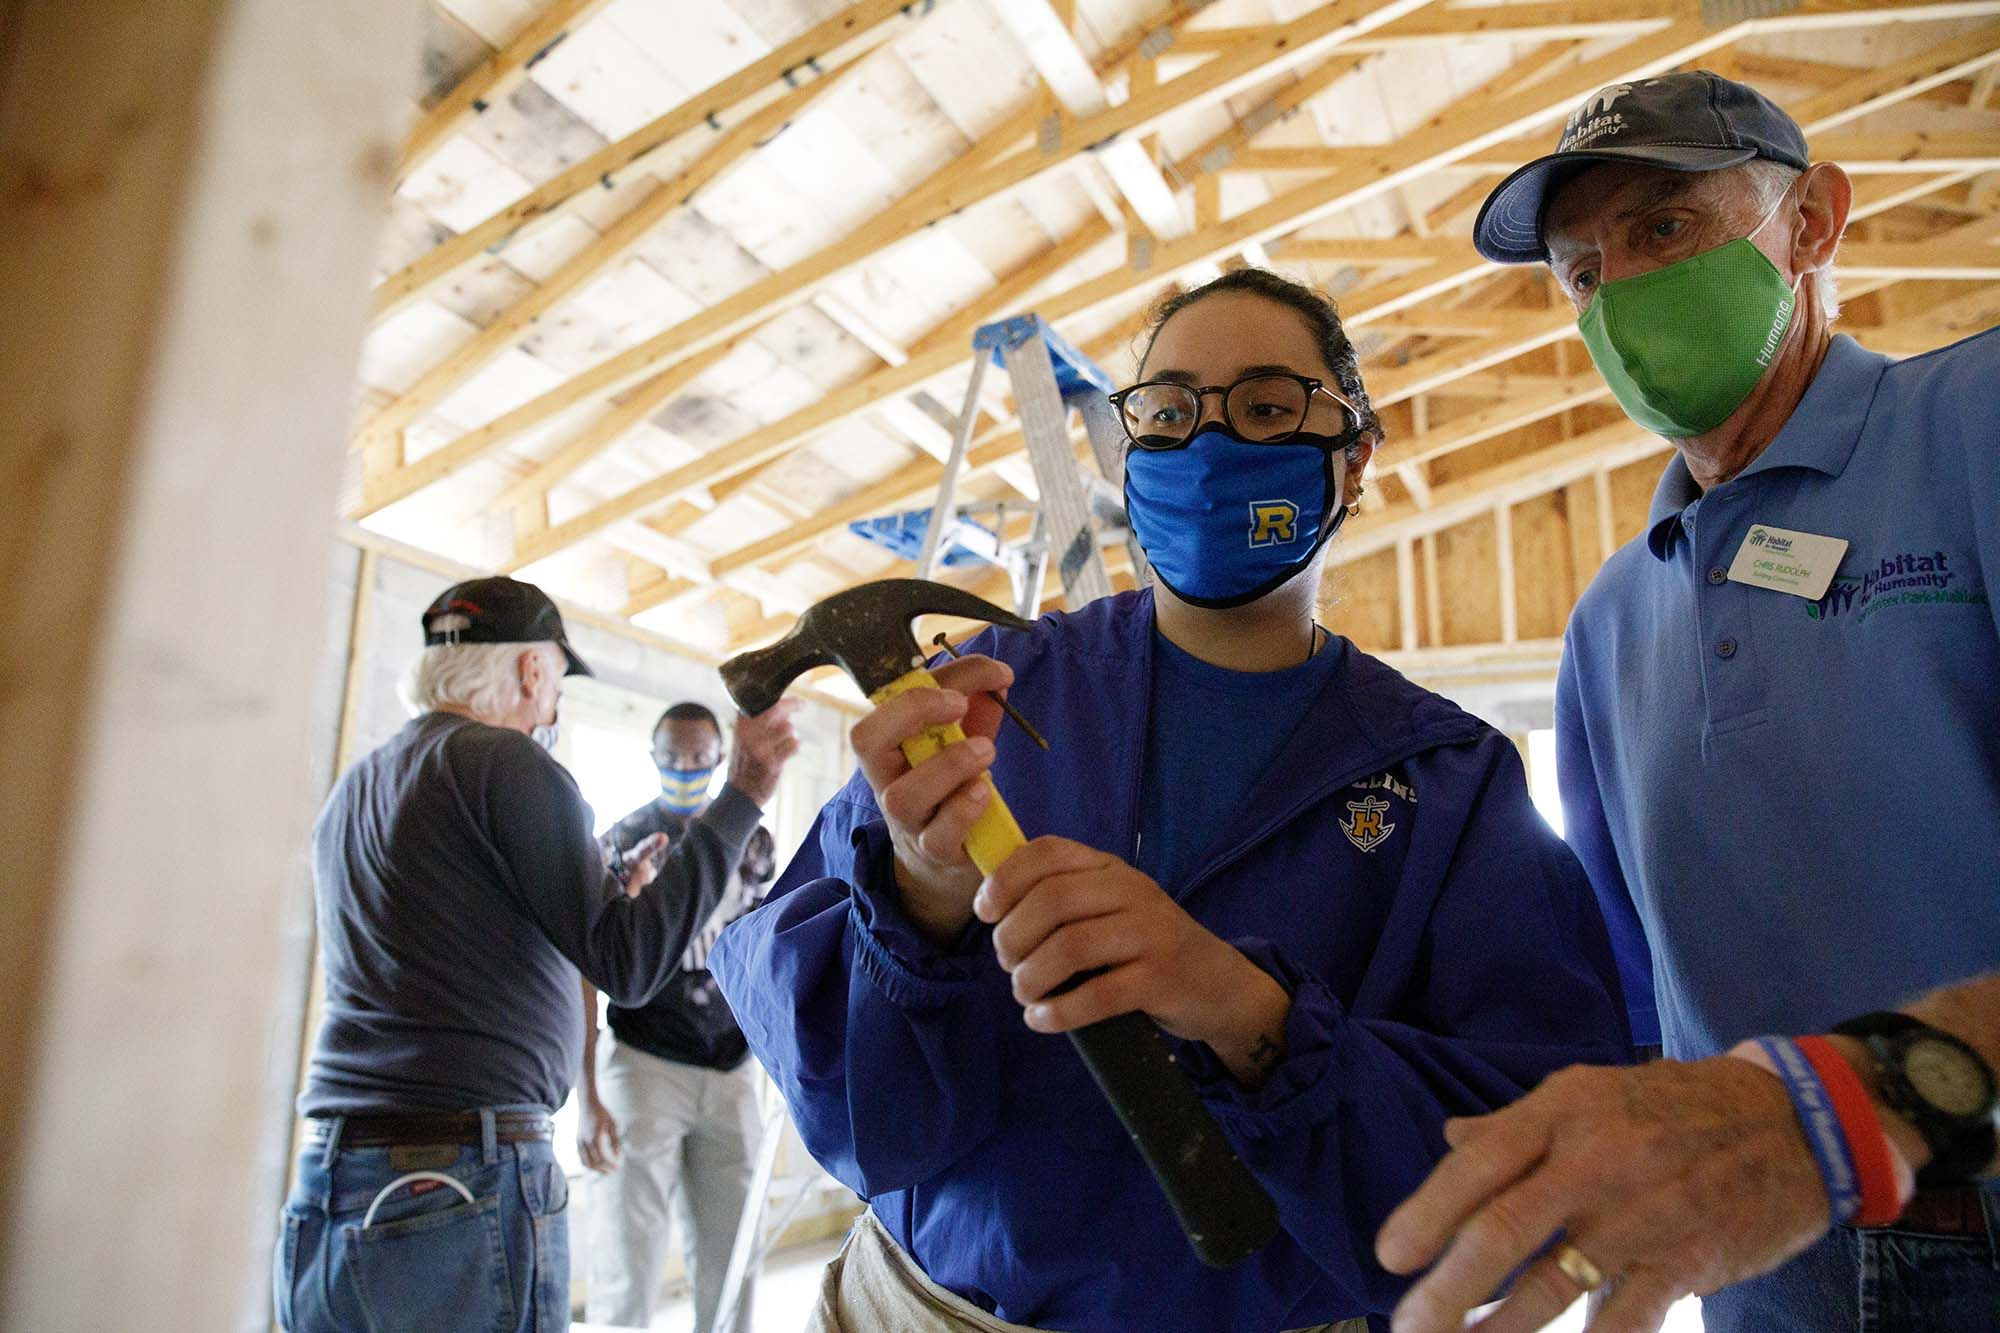 A student holds a hammer at Habitat for Humanity